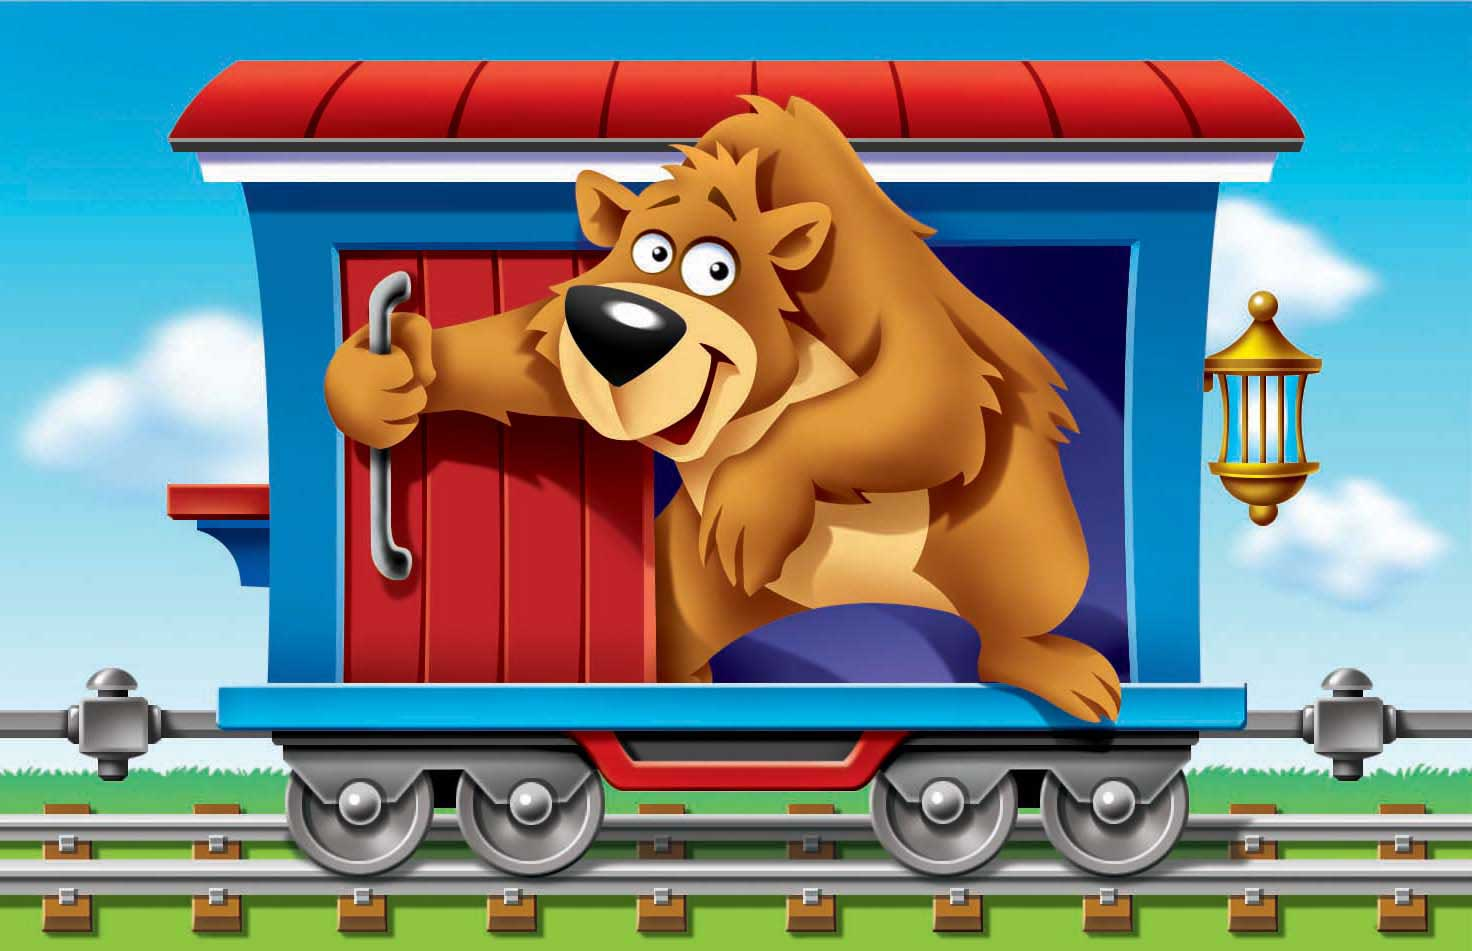 bear-opening-door-in-traincar